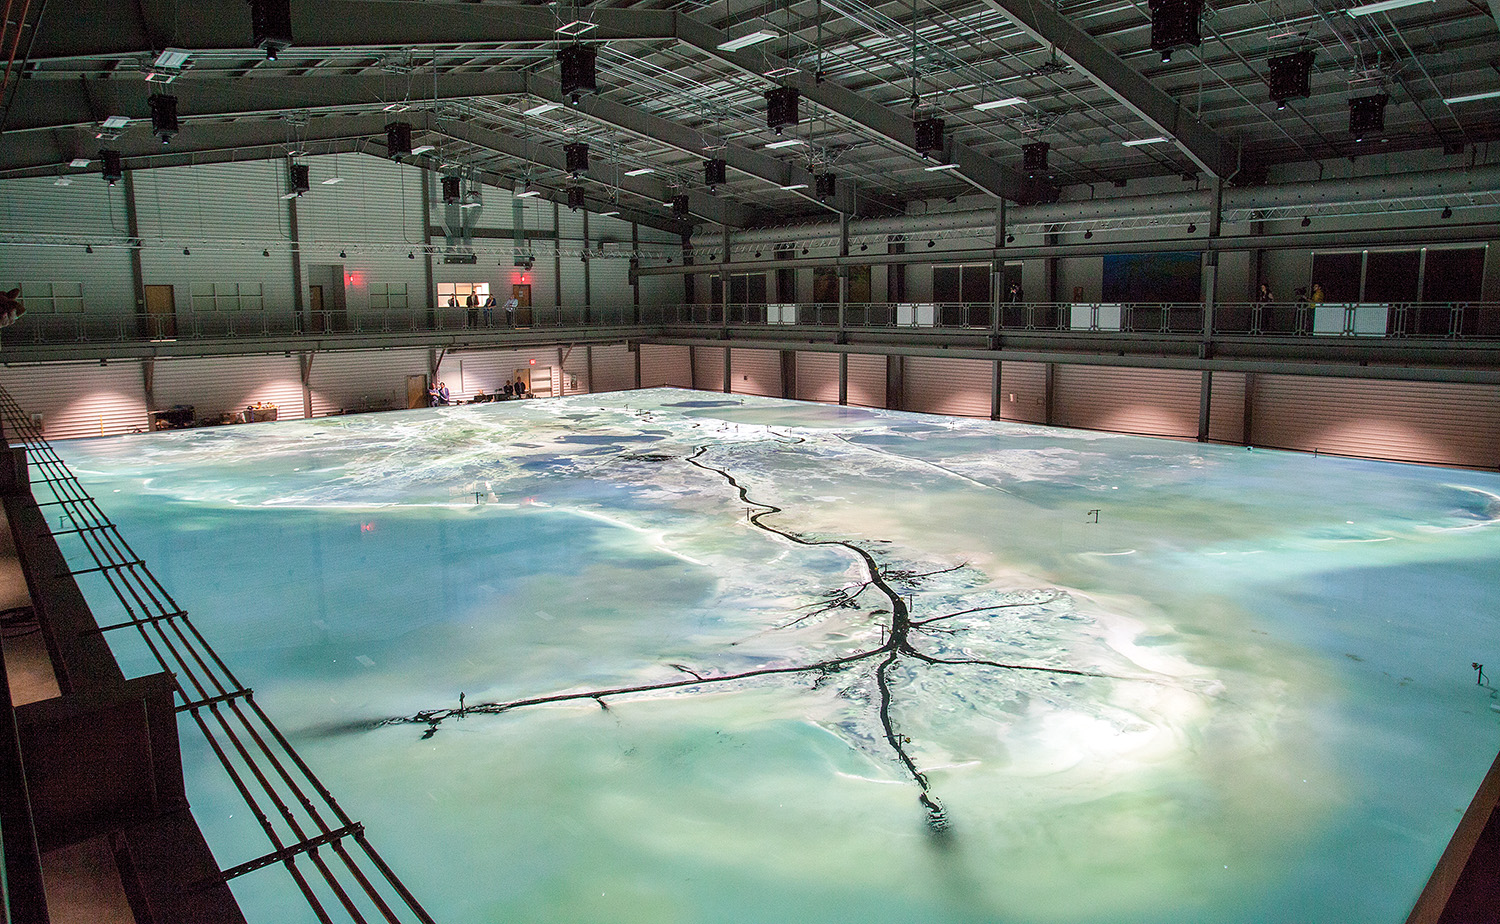 The centerpiece of the facility is a state-of-the-art model of the Lower Mississippi River.